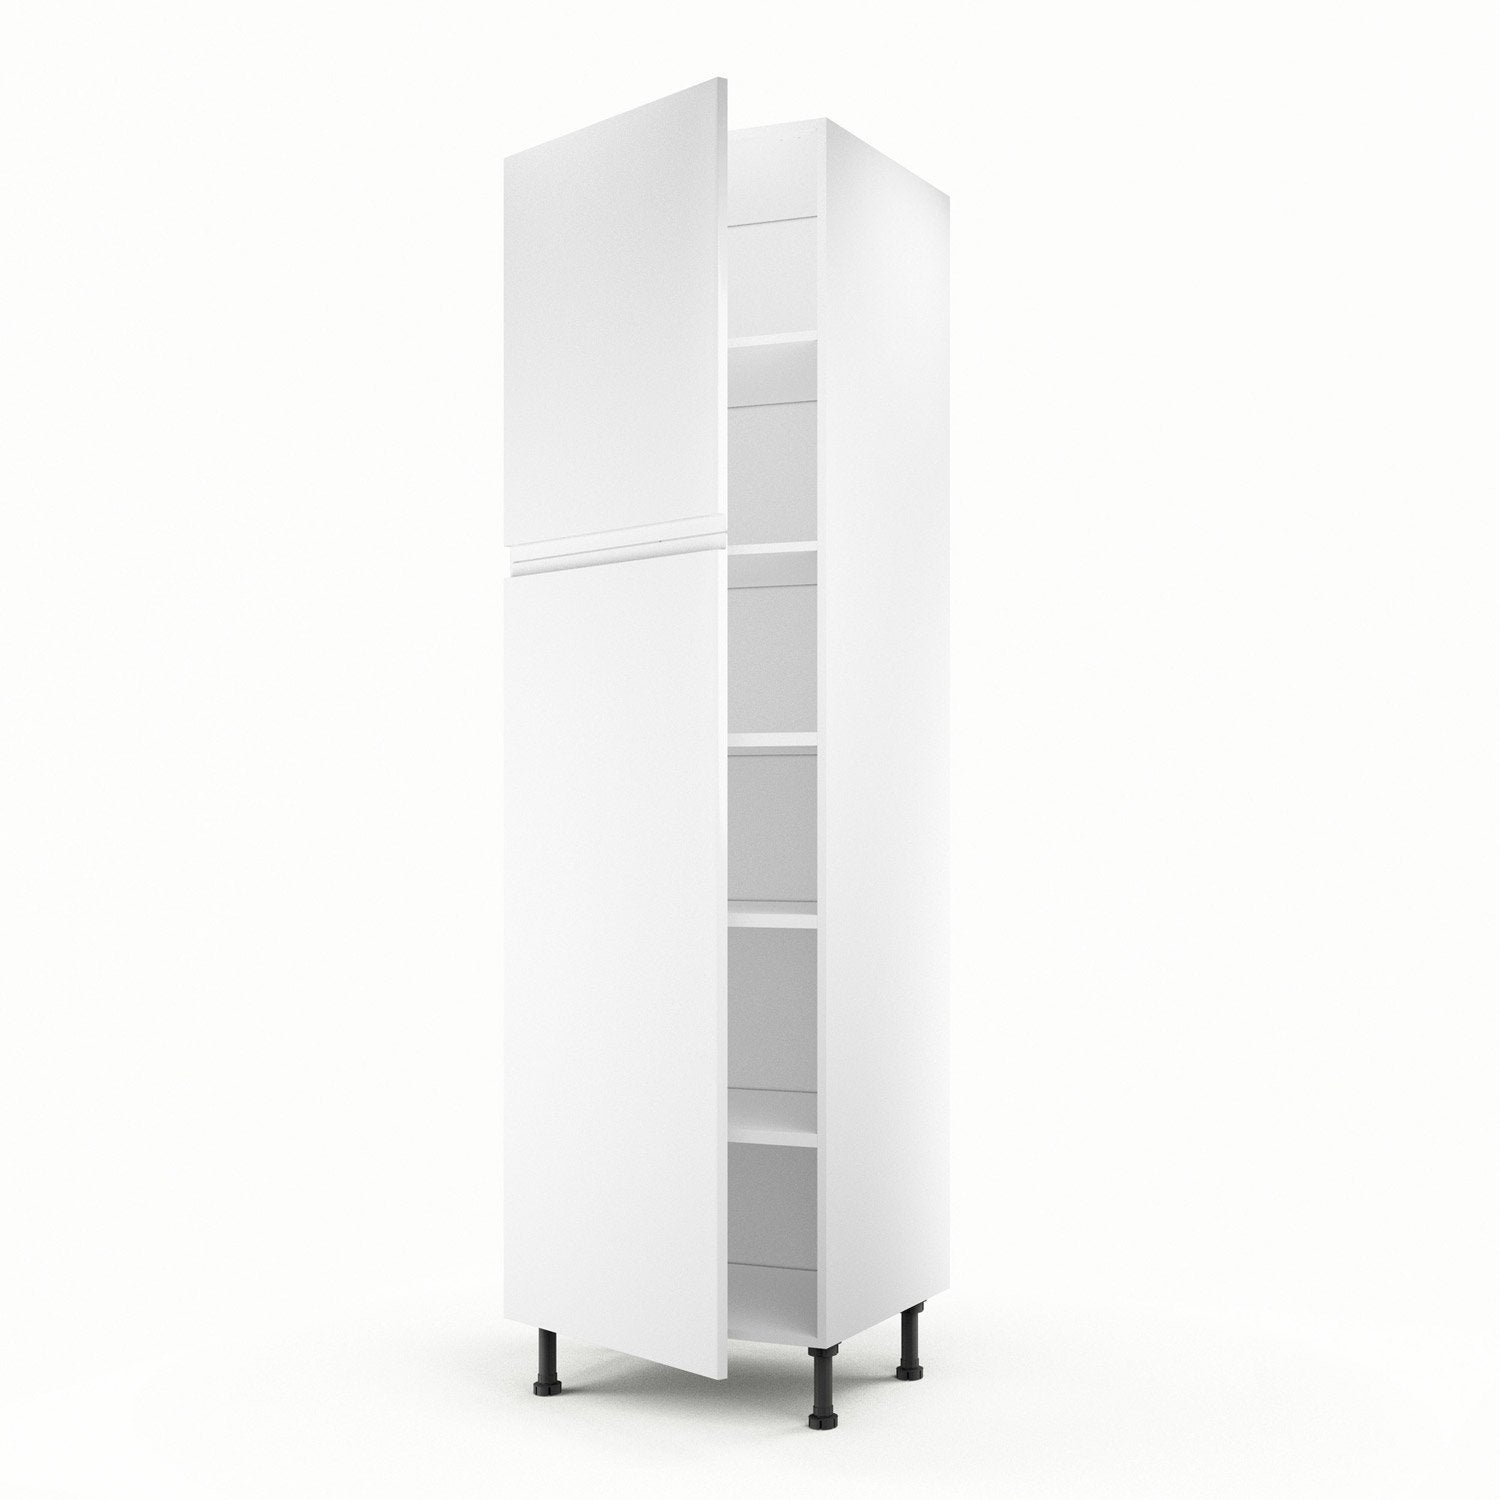 meuble de cuisine colonne blanc 2 portes graphic x l. Black Bedroom Furniture Sets. Home Design Ideas